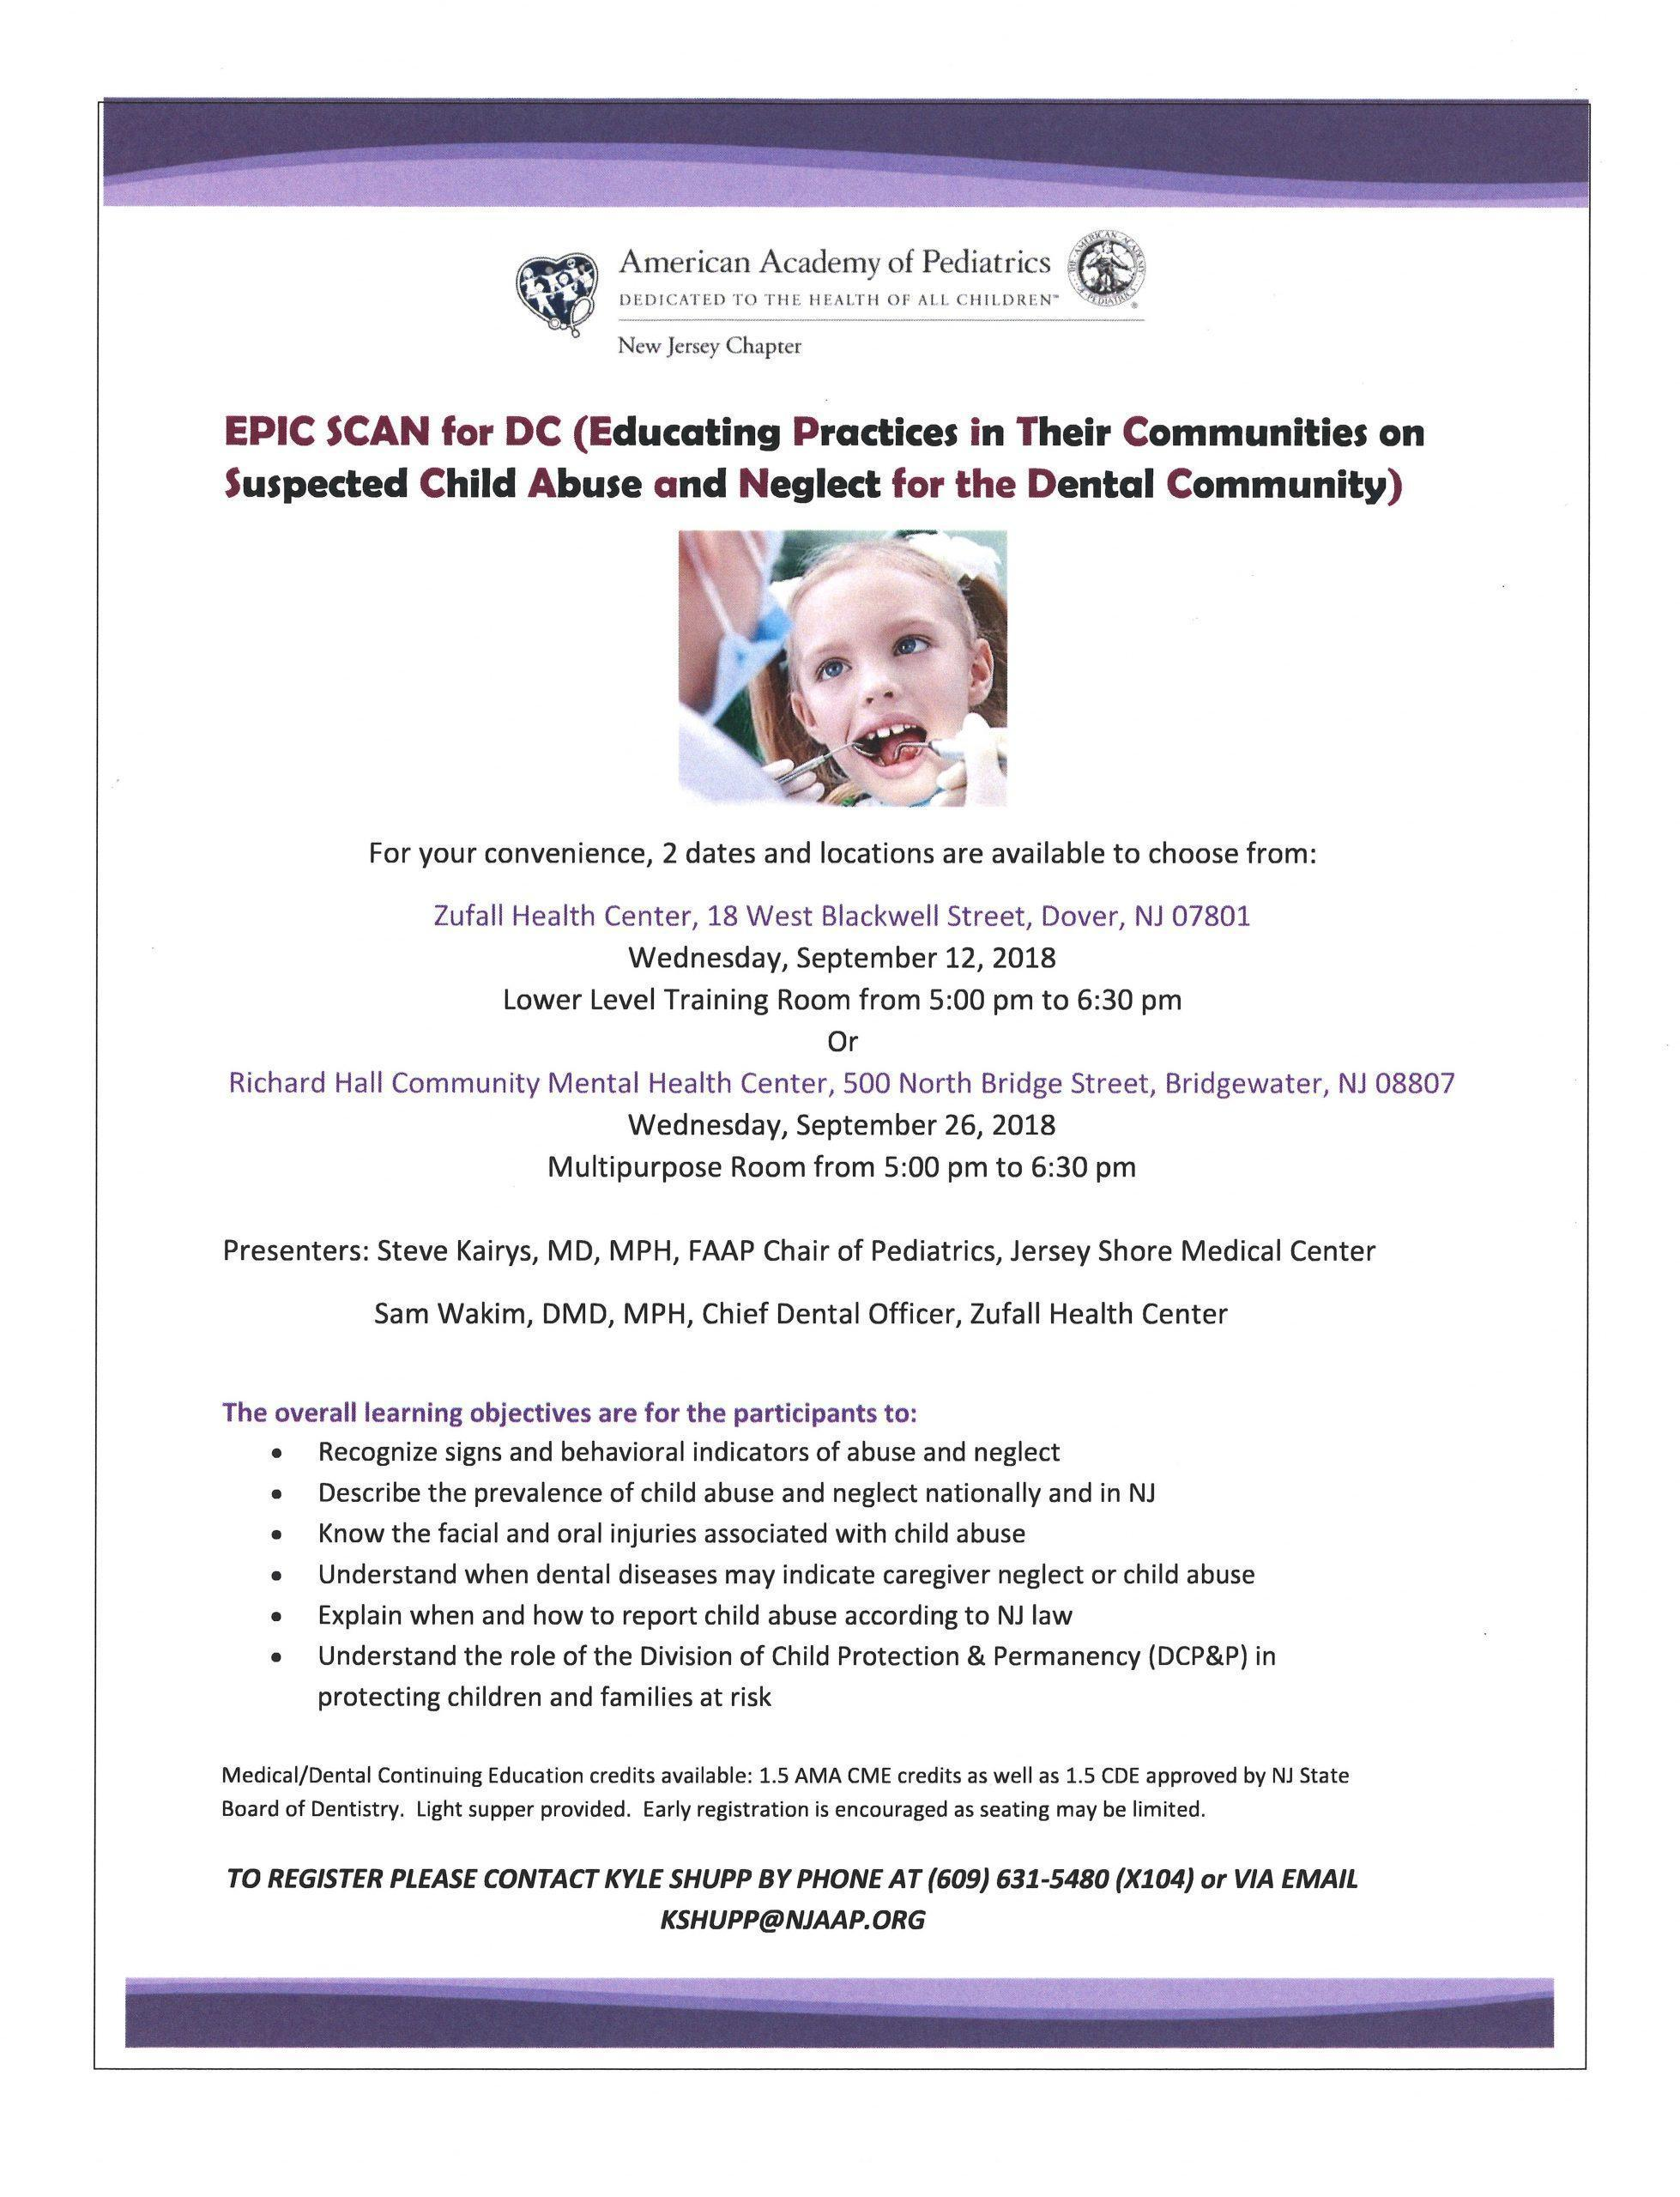 Flyer for dental seminar titled Educating Practices in Their Communities on Suspected Child Abuse and Neglect for the Dental Community